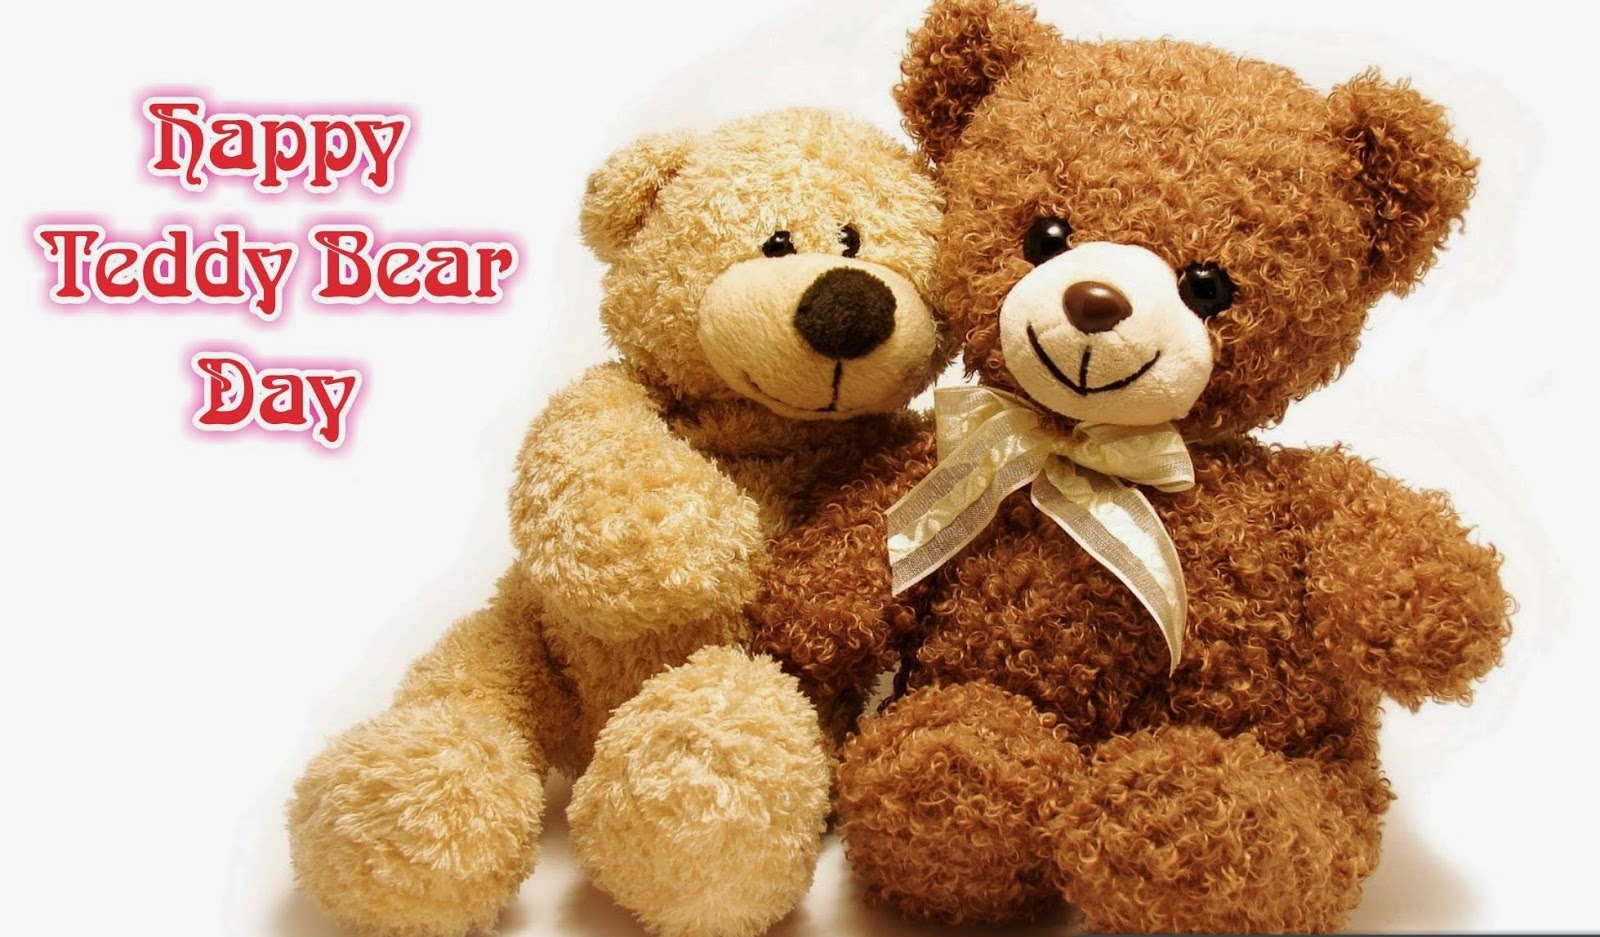 teddy Day SMS/Messages | Teddy Bear Day SMS